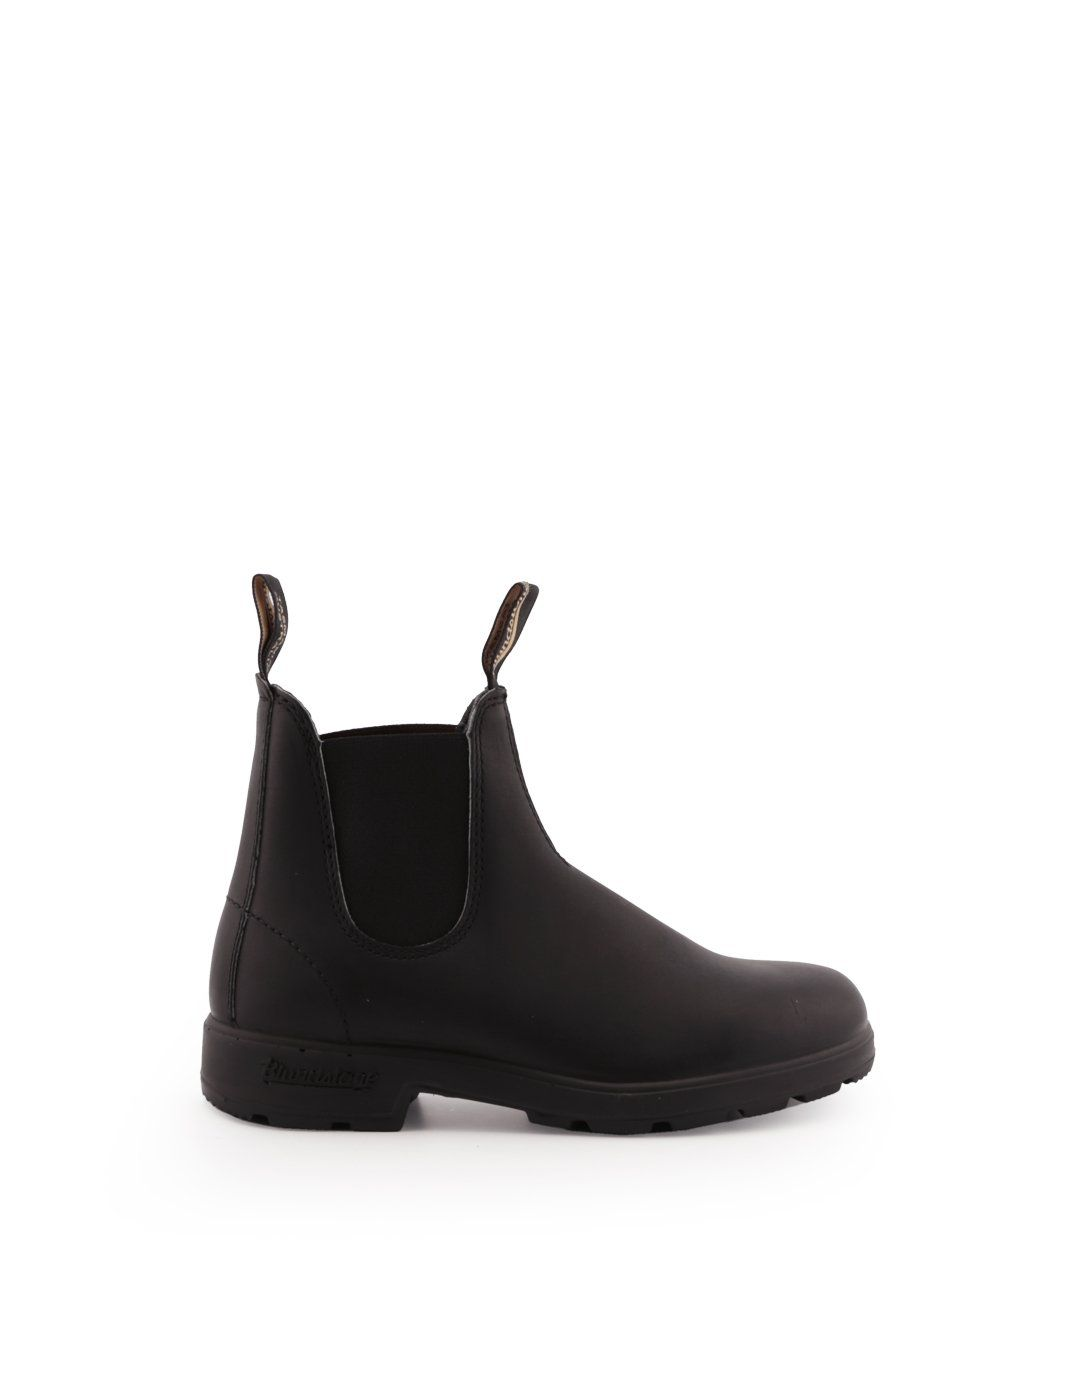 Blundstone BLUNDSTONE MEN'S BLACK LEATHER ANKLE BOOTS